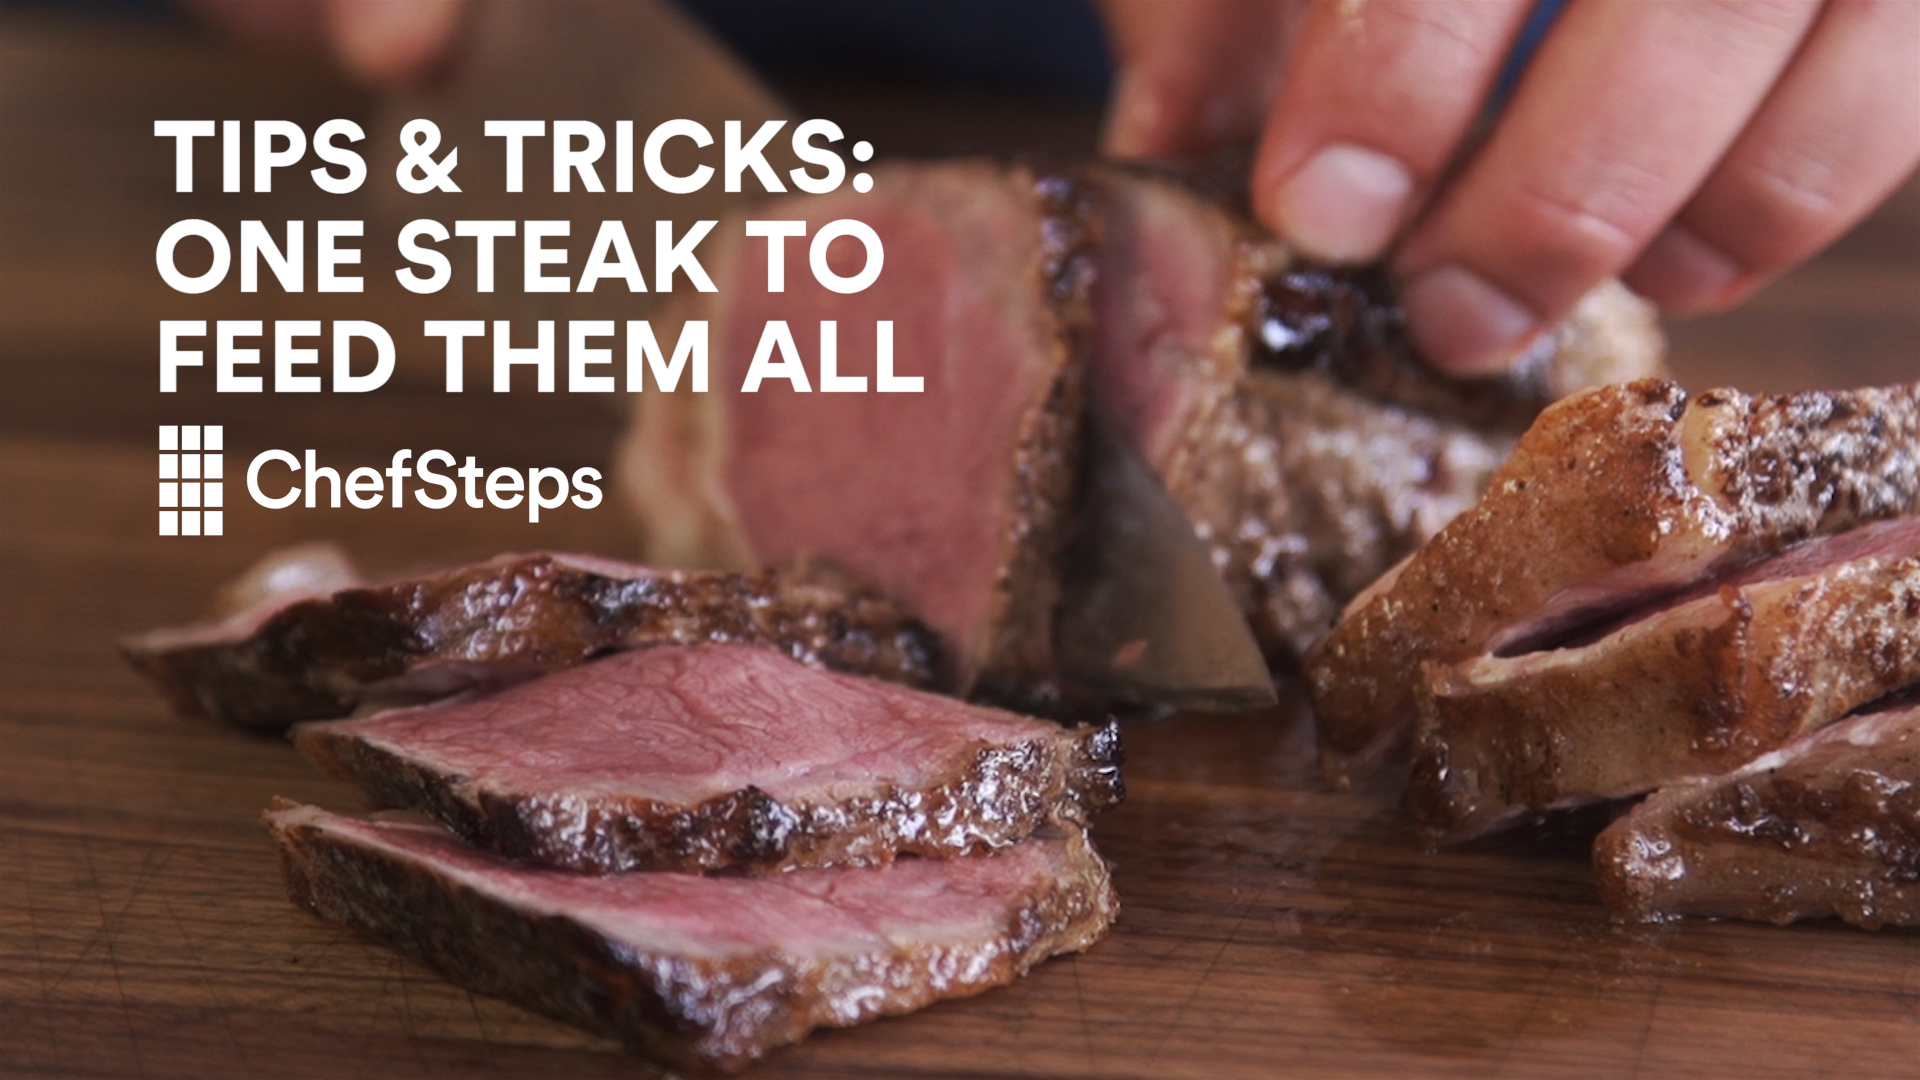 cooking-big-steak-chefsteps